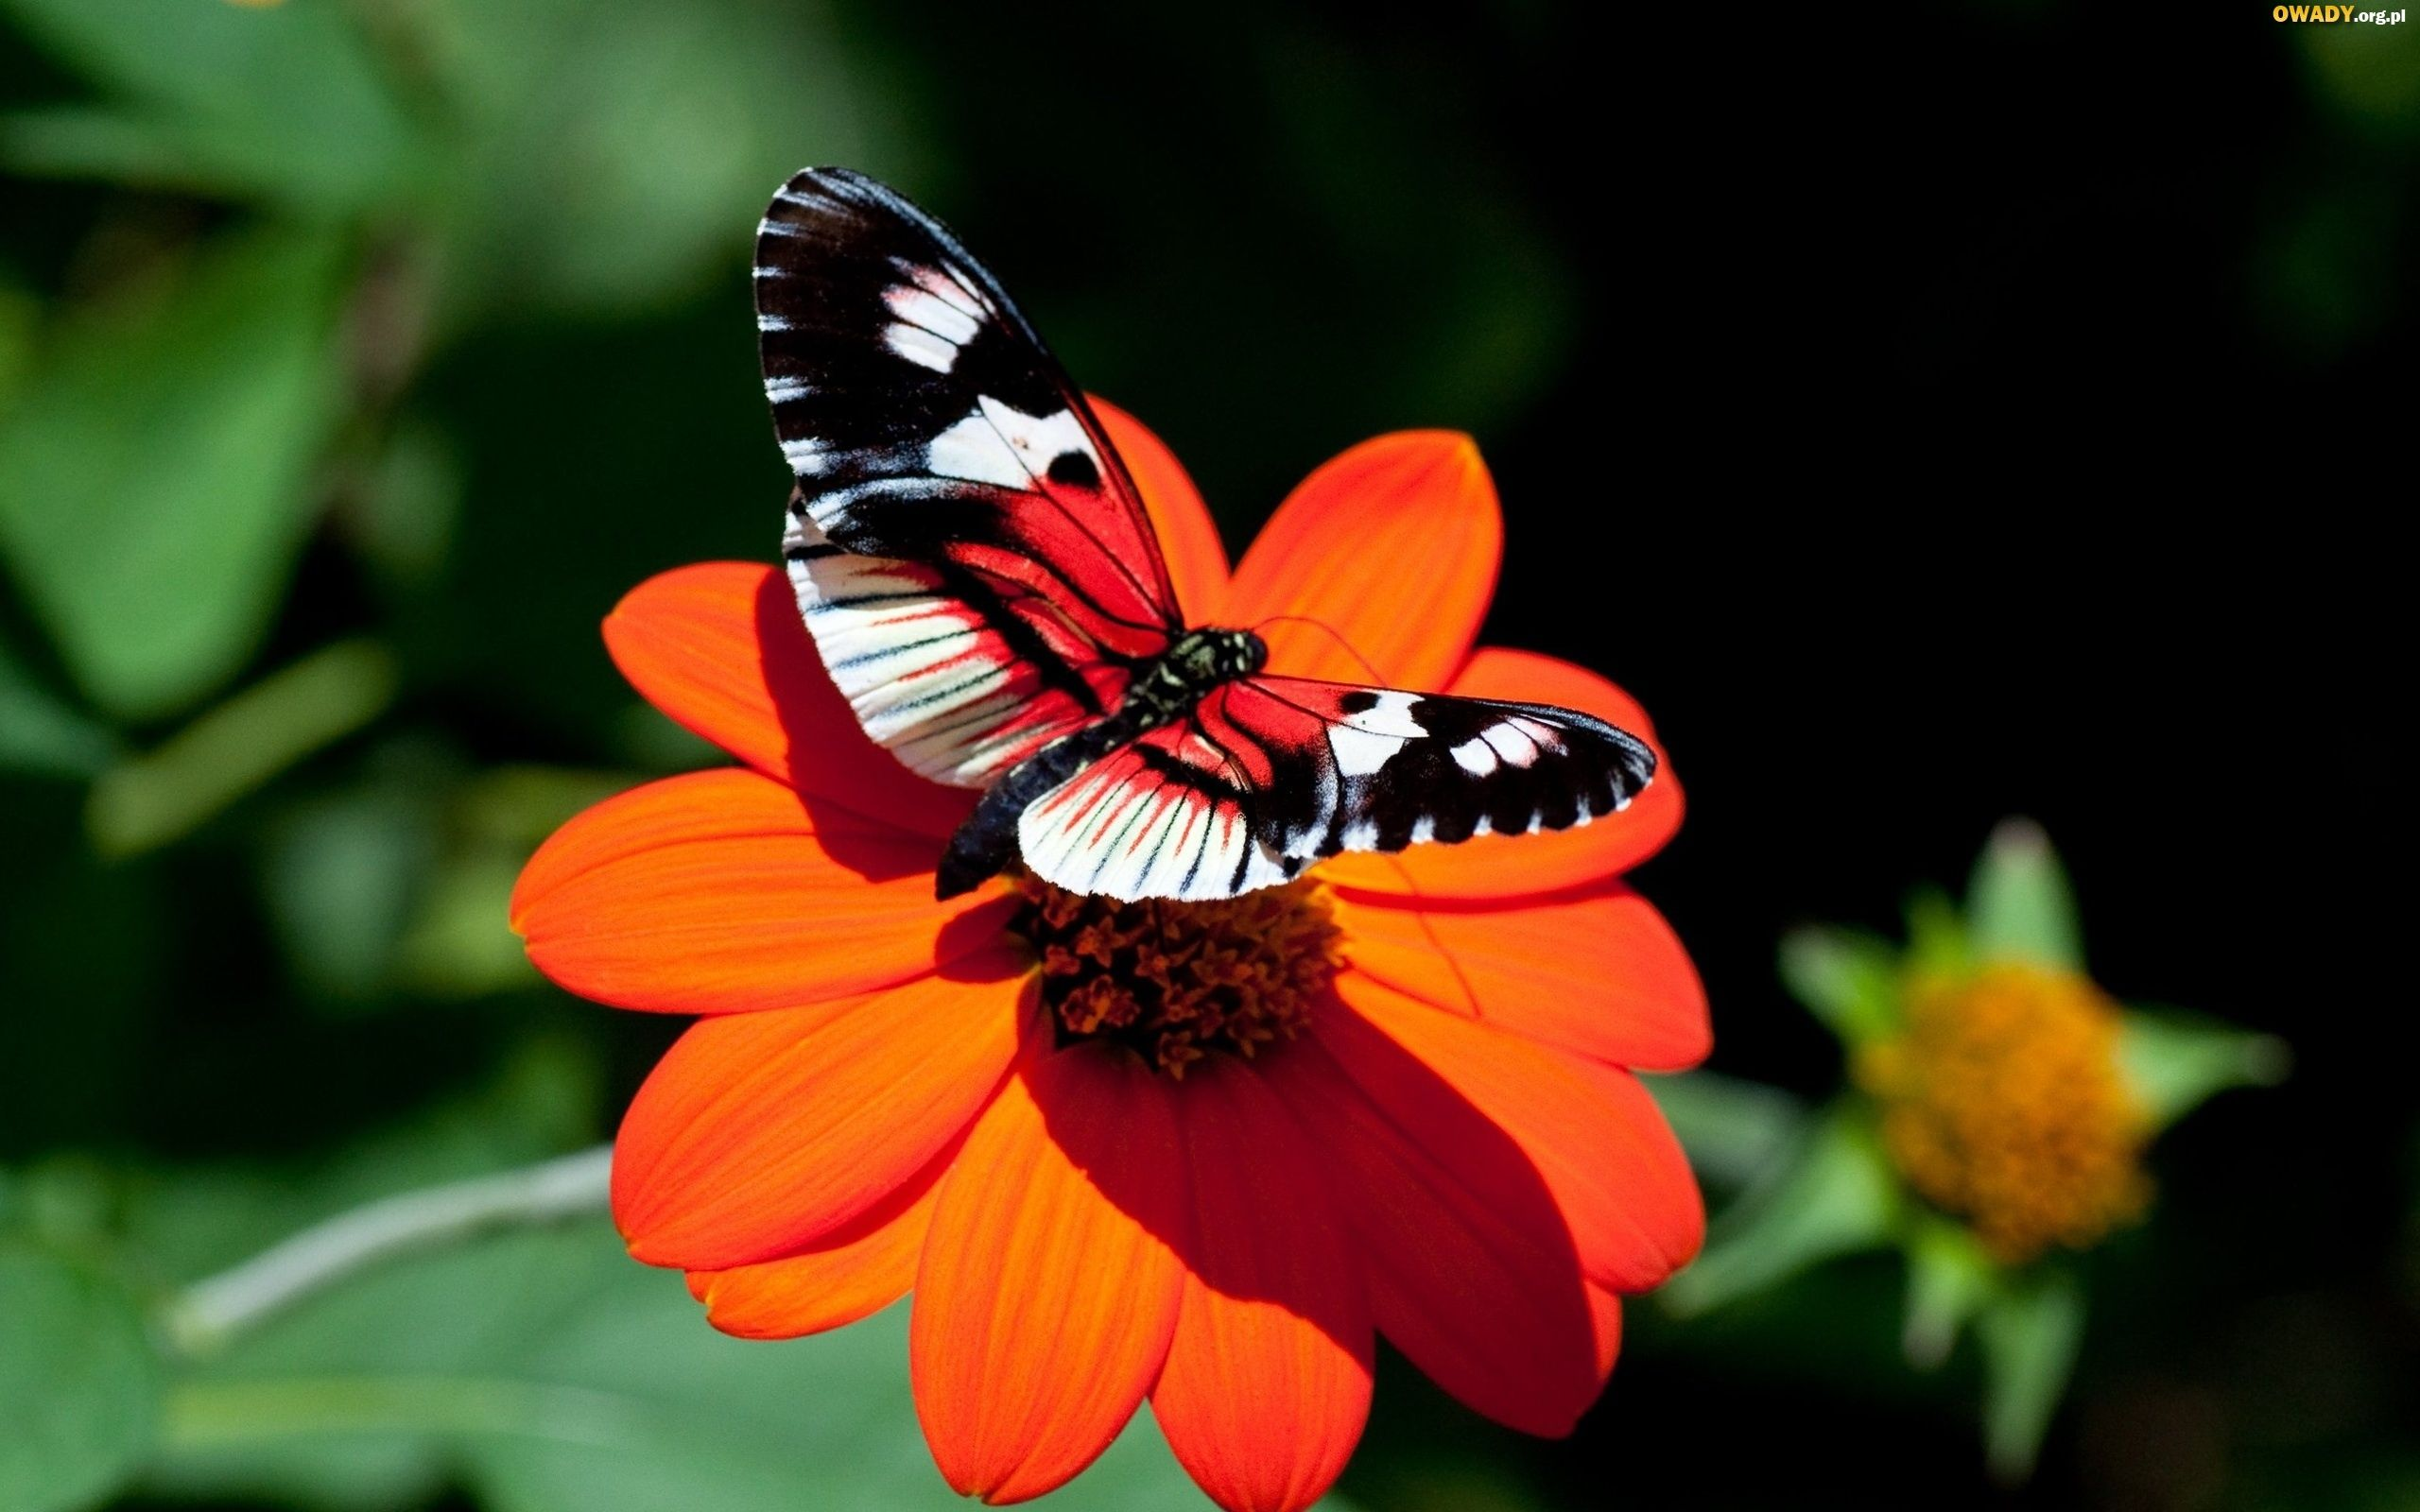 Red butterfly on a red flower.